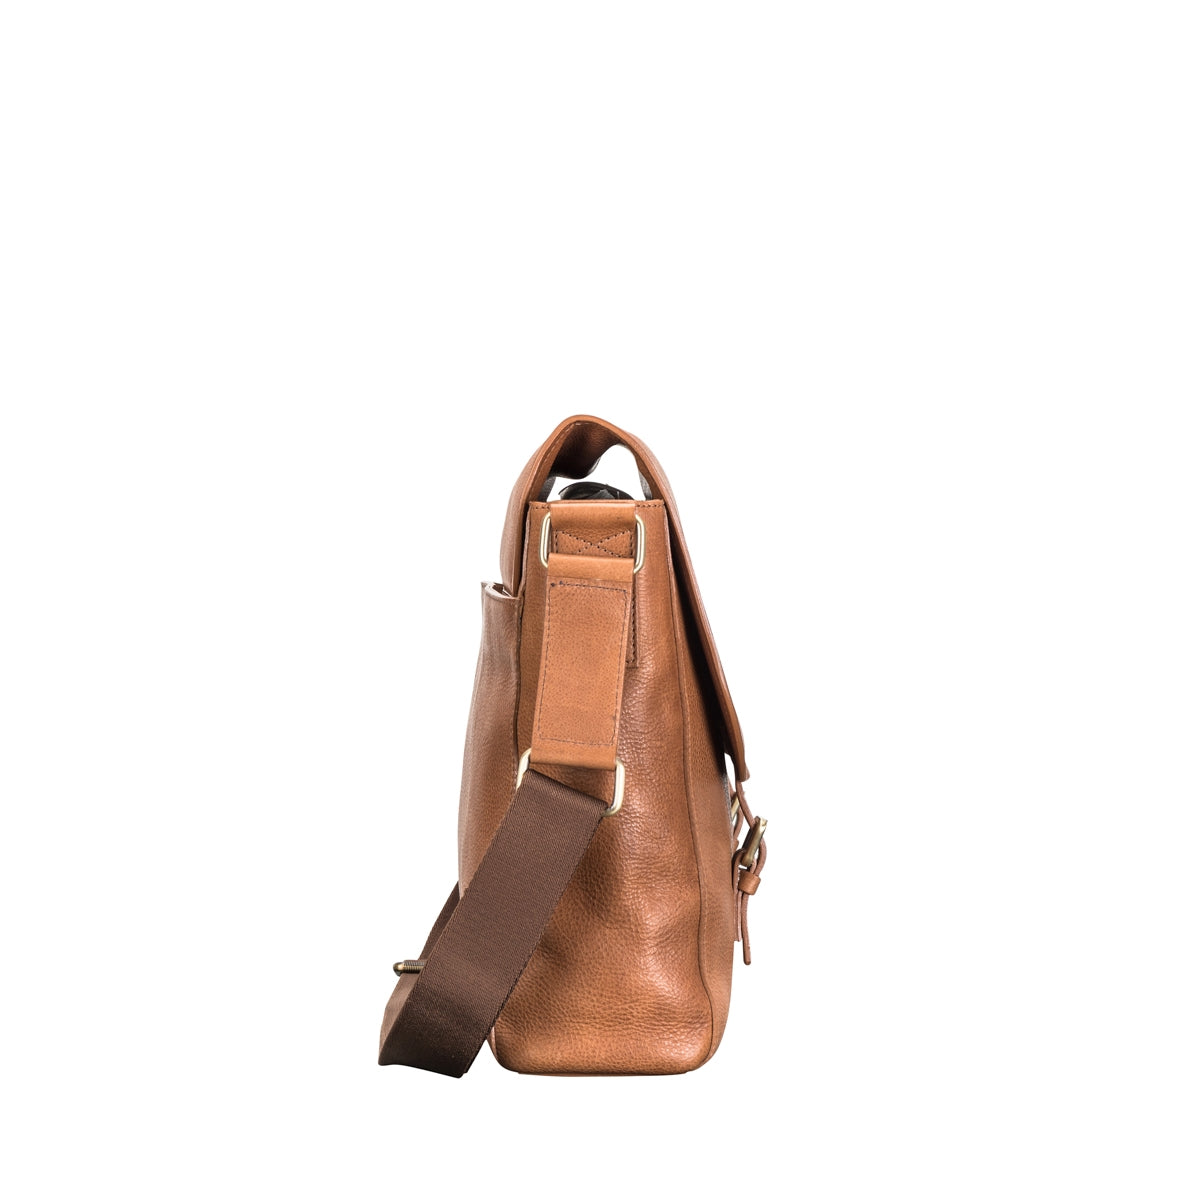 Image 3 of the 'Ravenna' Men's Leather Classic Satchel Bag